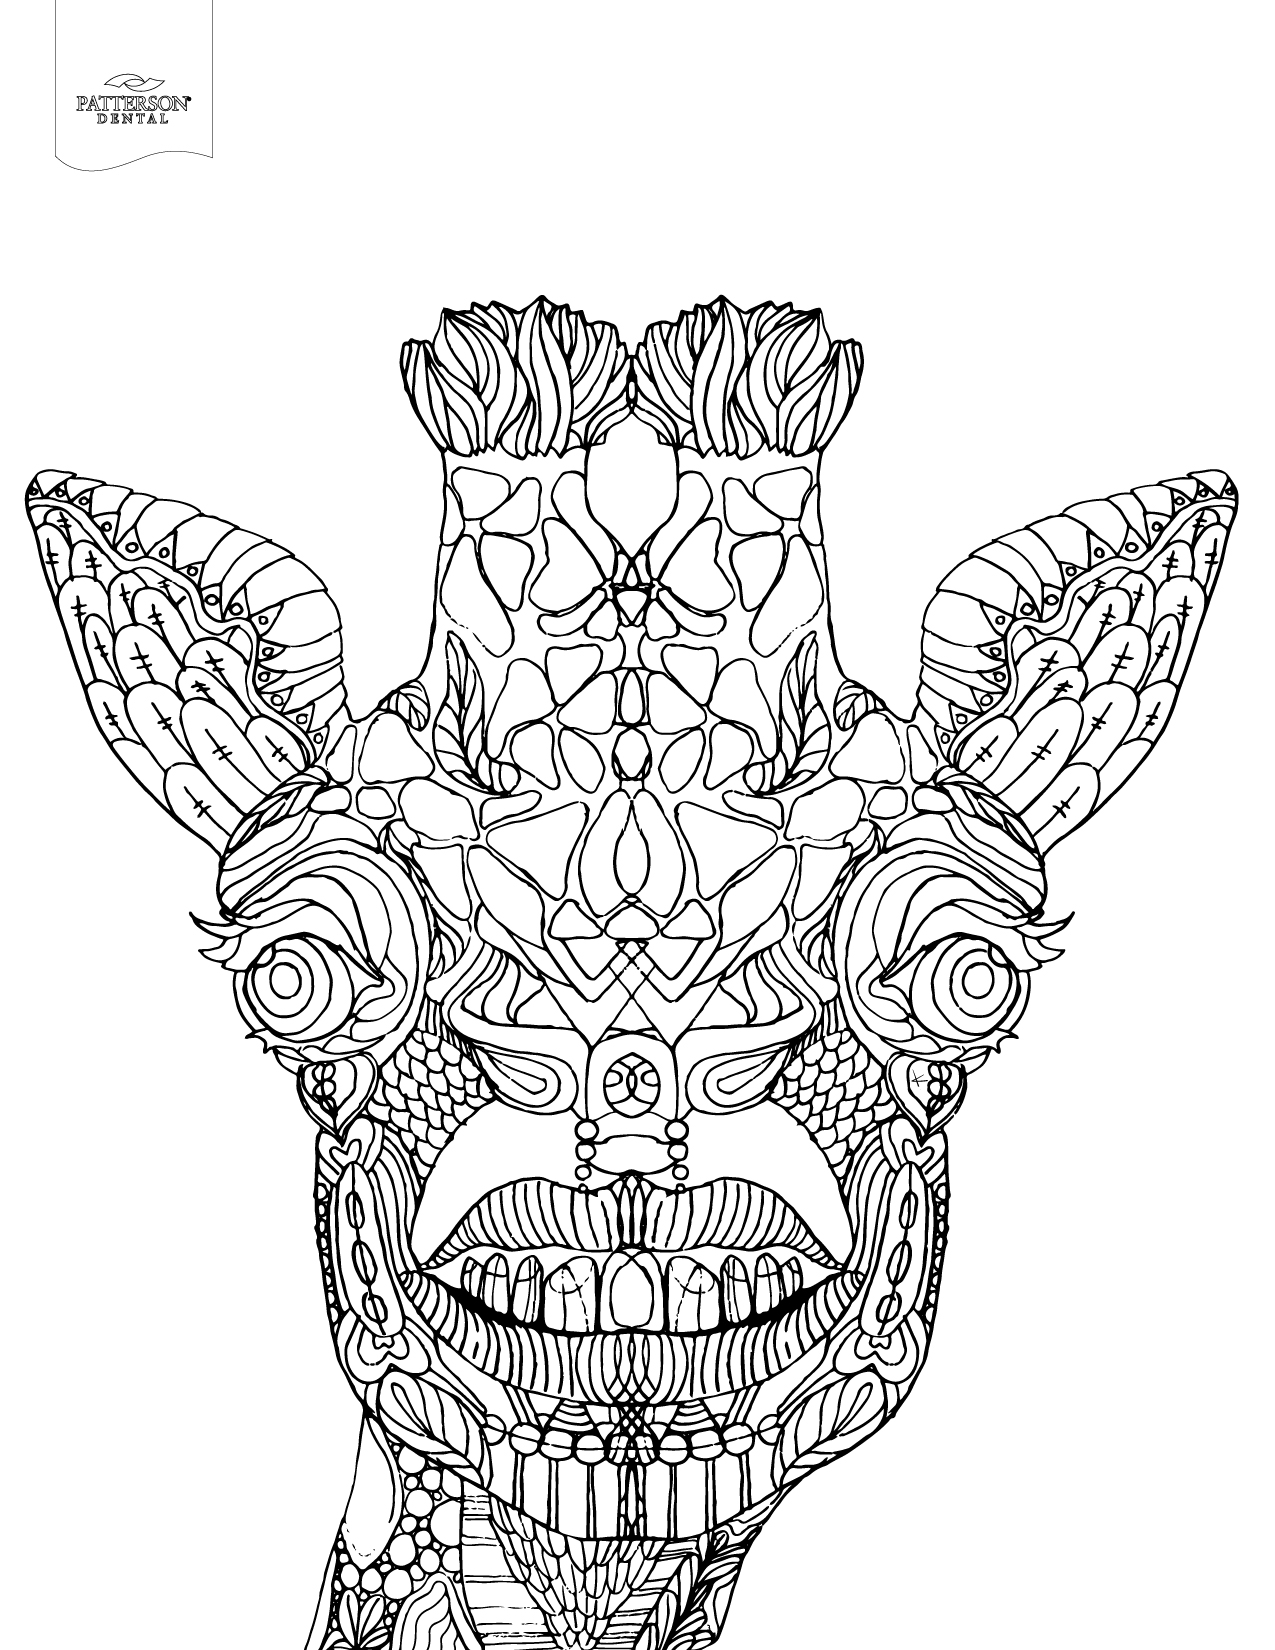 10 toothy adult coloring pages printable off the cusp for Giraffe coloring pages to print